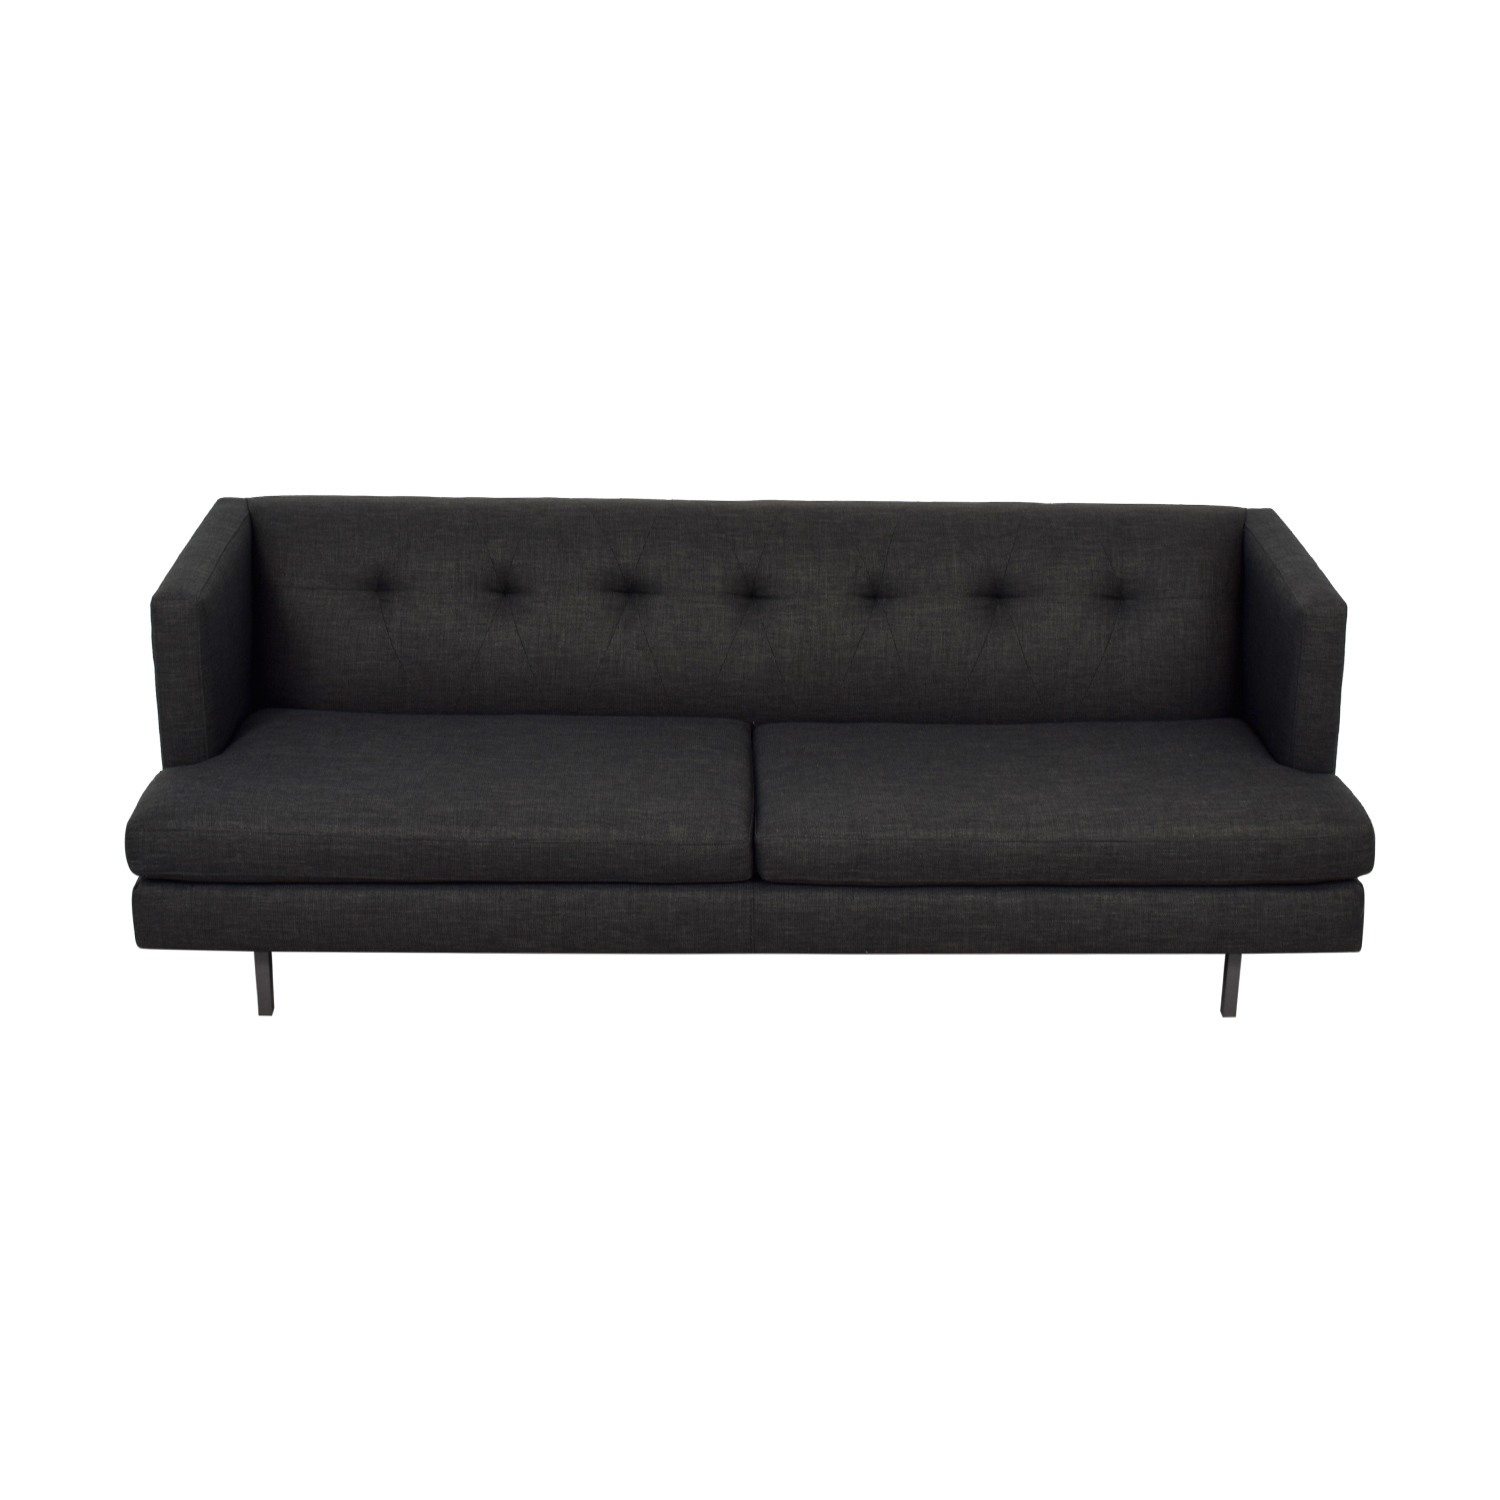 CB2 CB2 Avec Grey Semi-Tufted Two-Cushion Sofa on sale